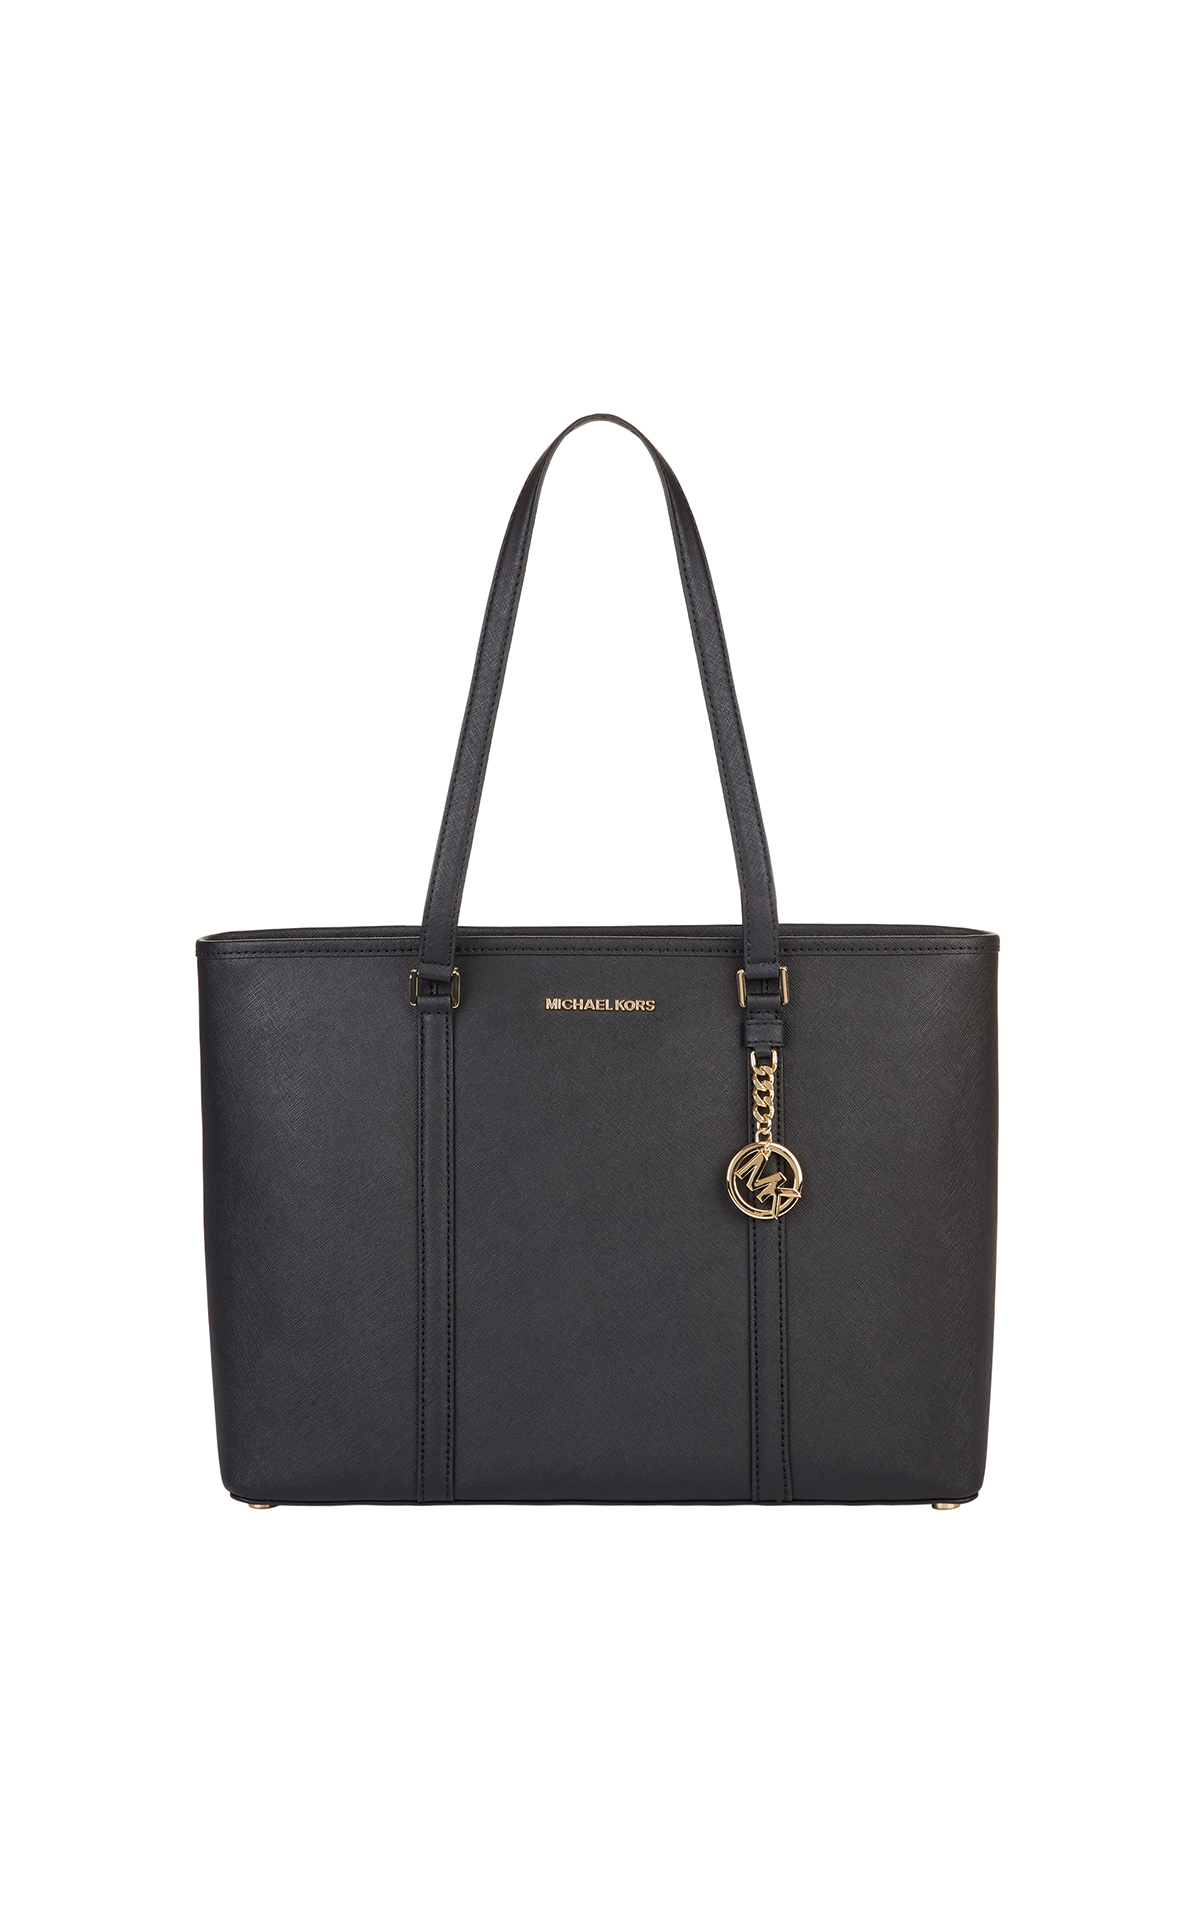 Michael Kors Sady tote at The Bicester Village Shopping Collection